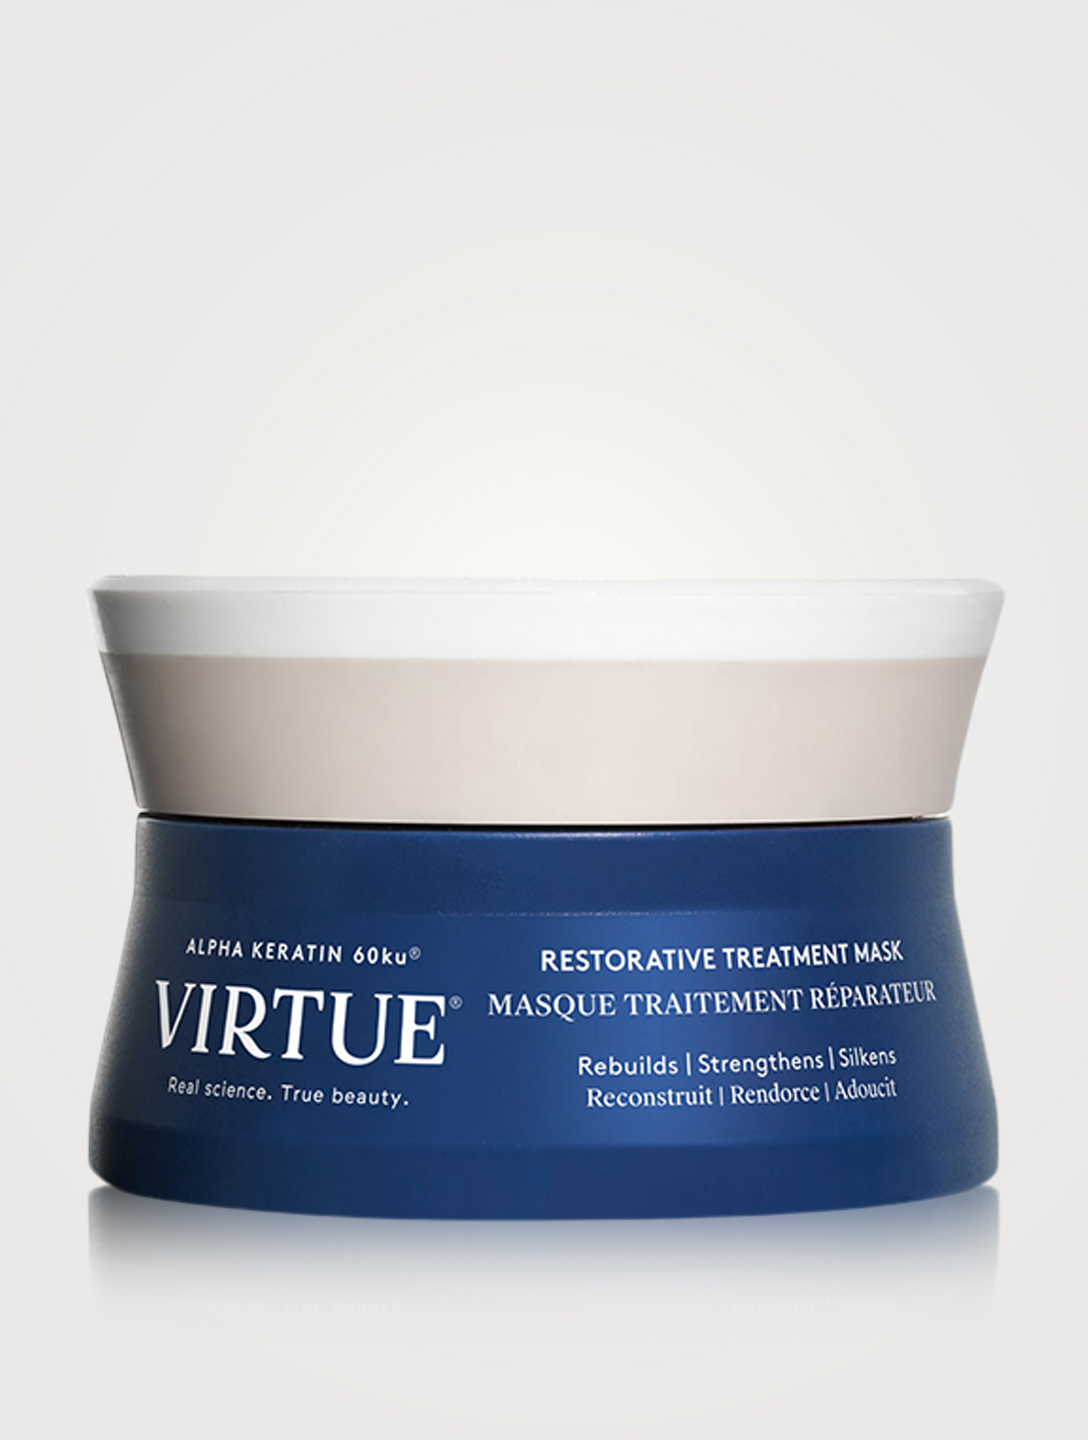 VIRTUE Restorative Treatment Mask Beauty